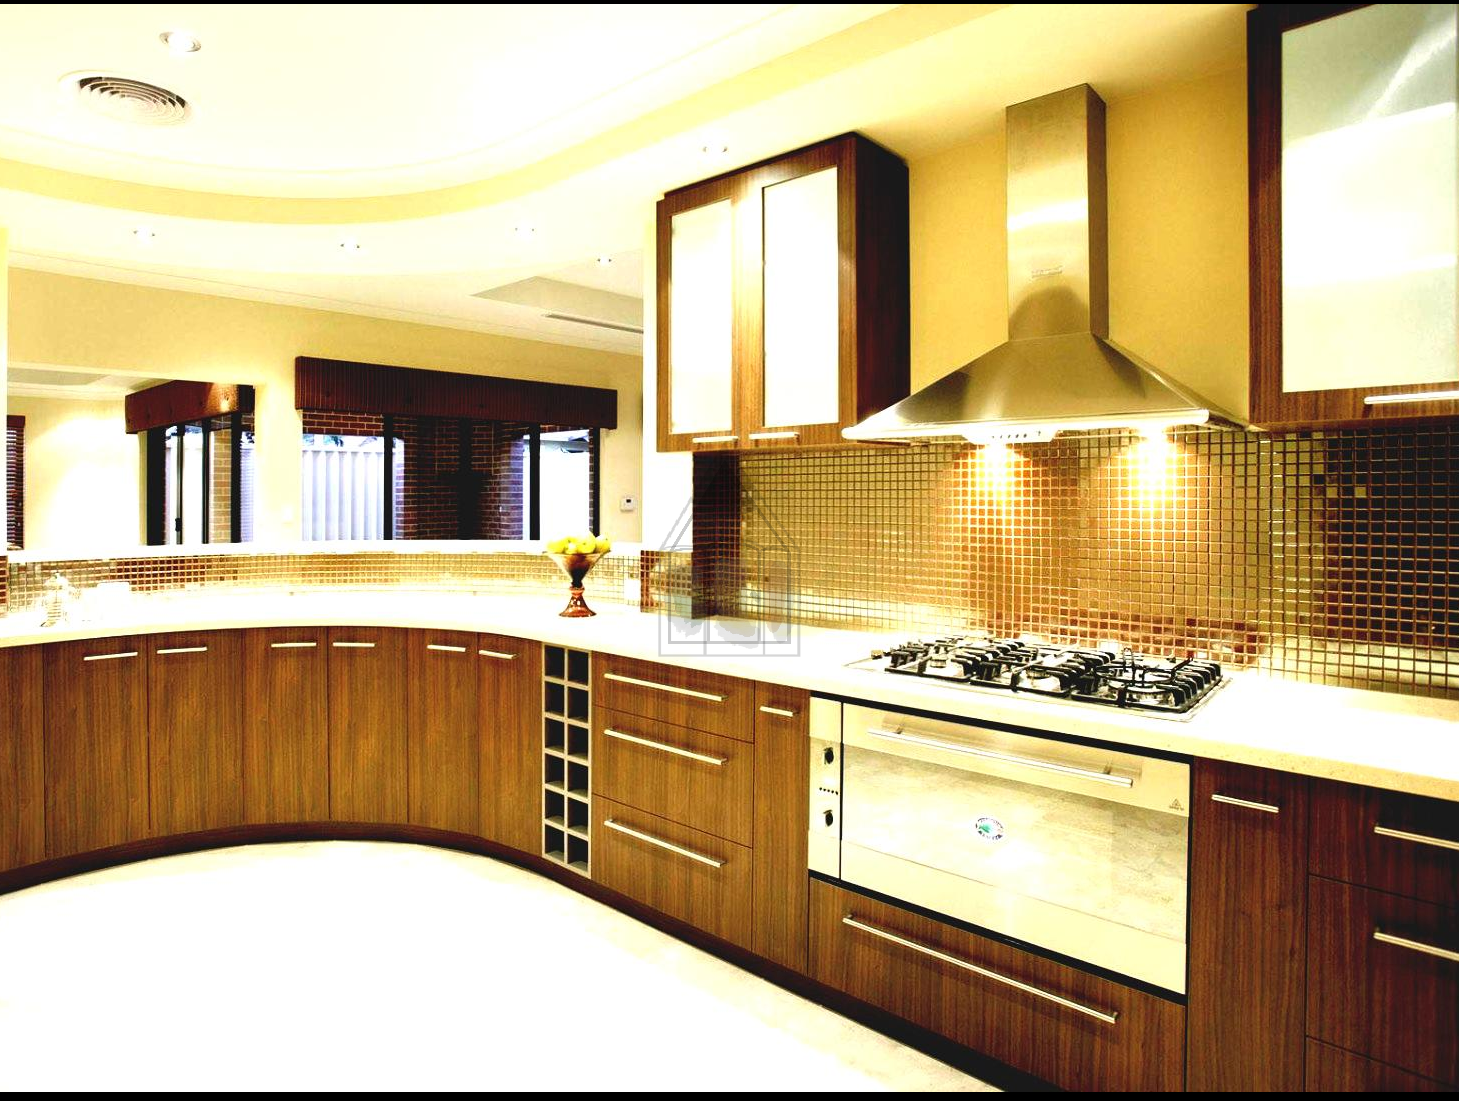 Kitchenette Design Of A Large House In Karachi This Is Mini Kitchen For But Can Be Easily Replicated Small